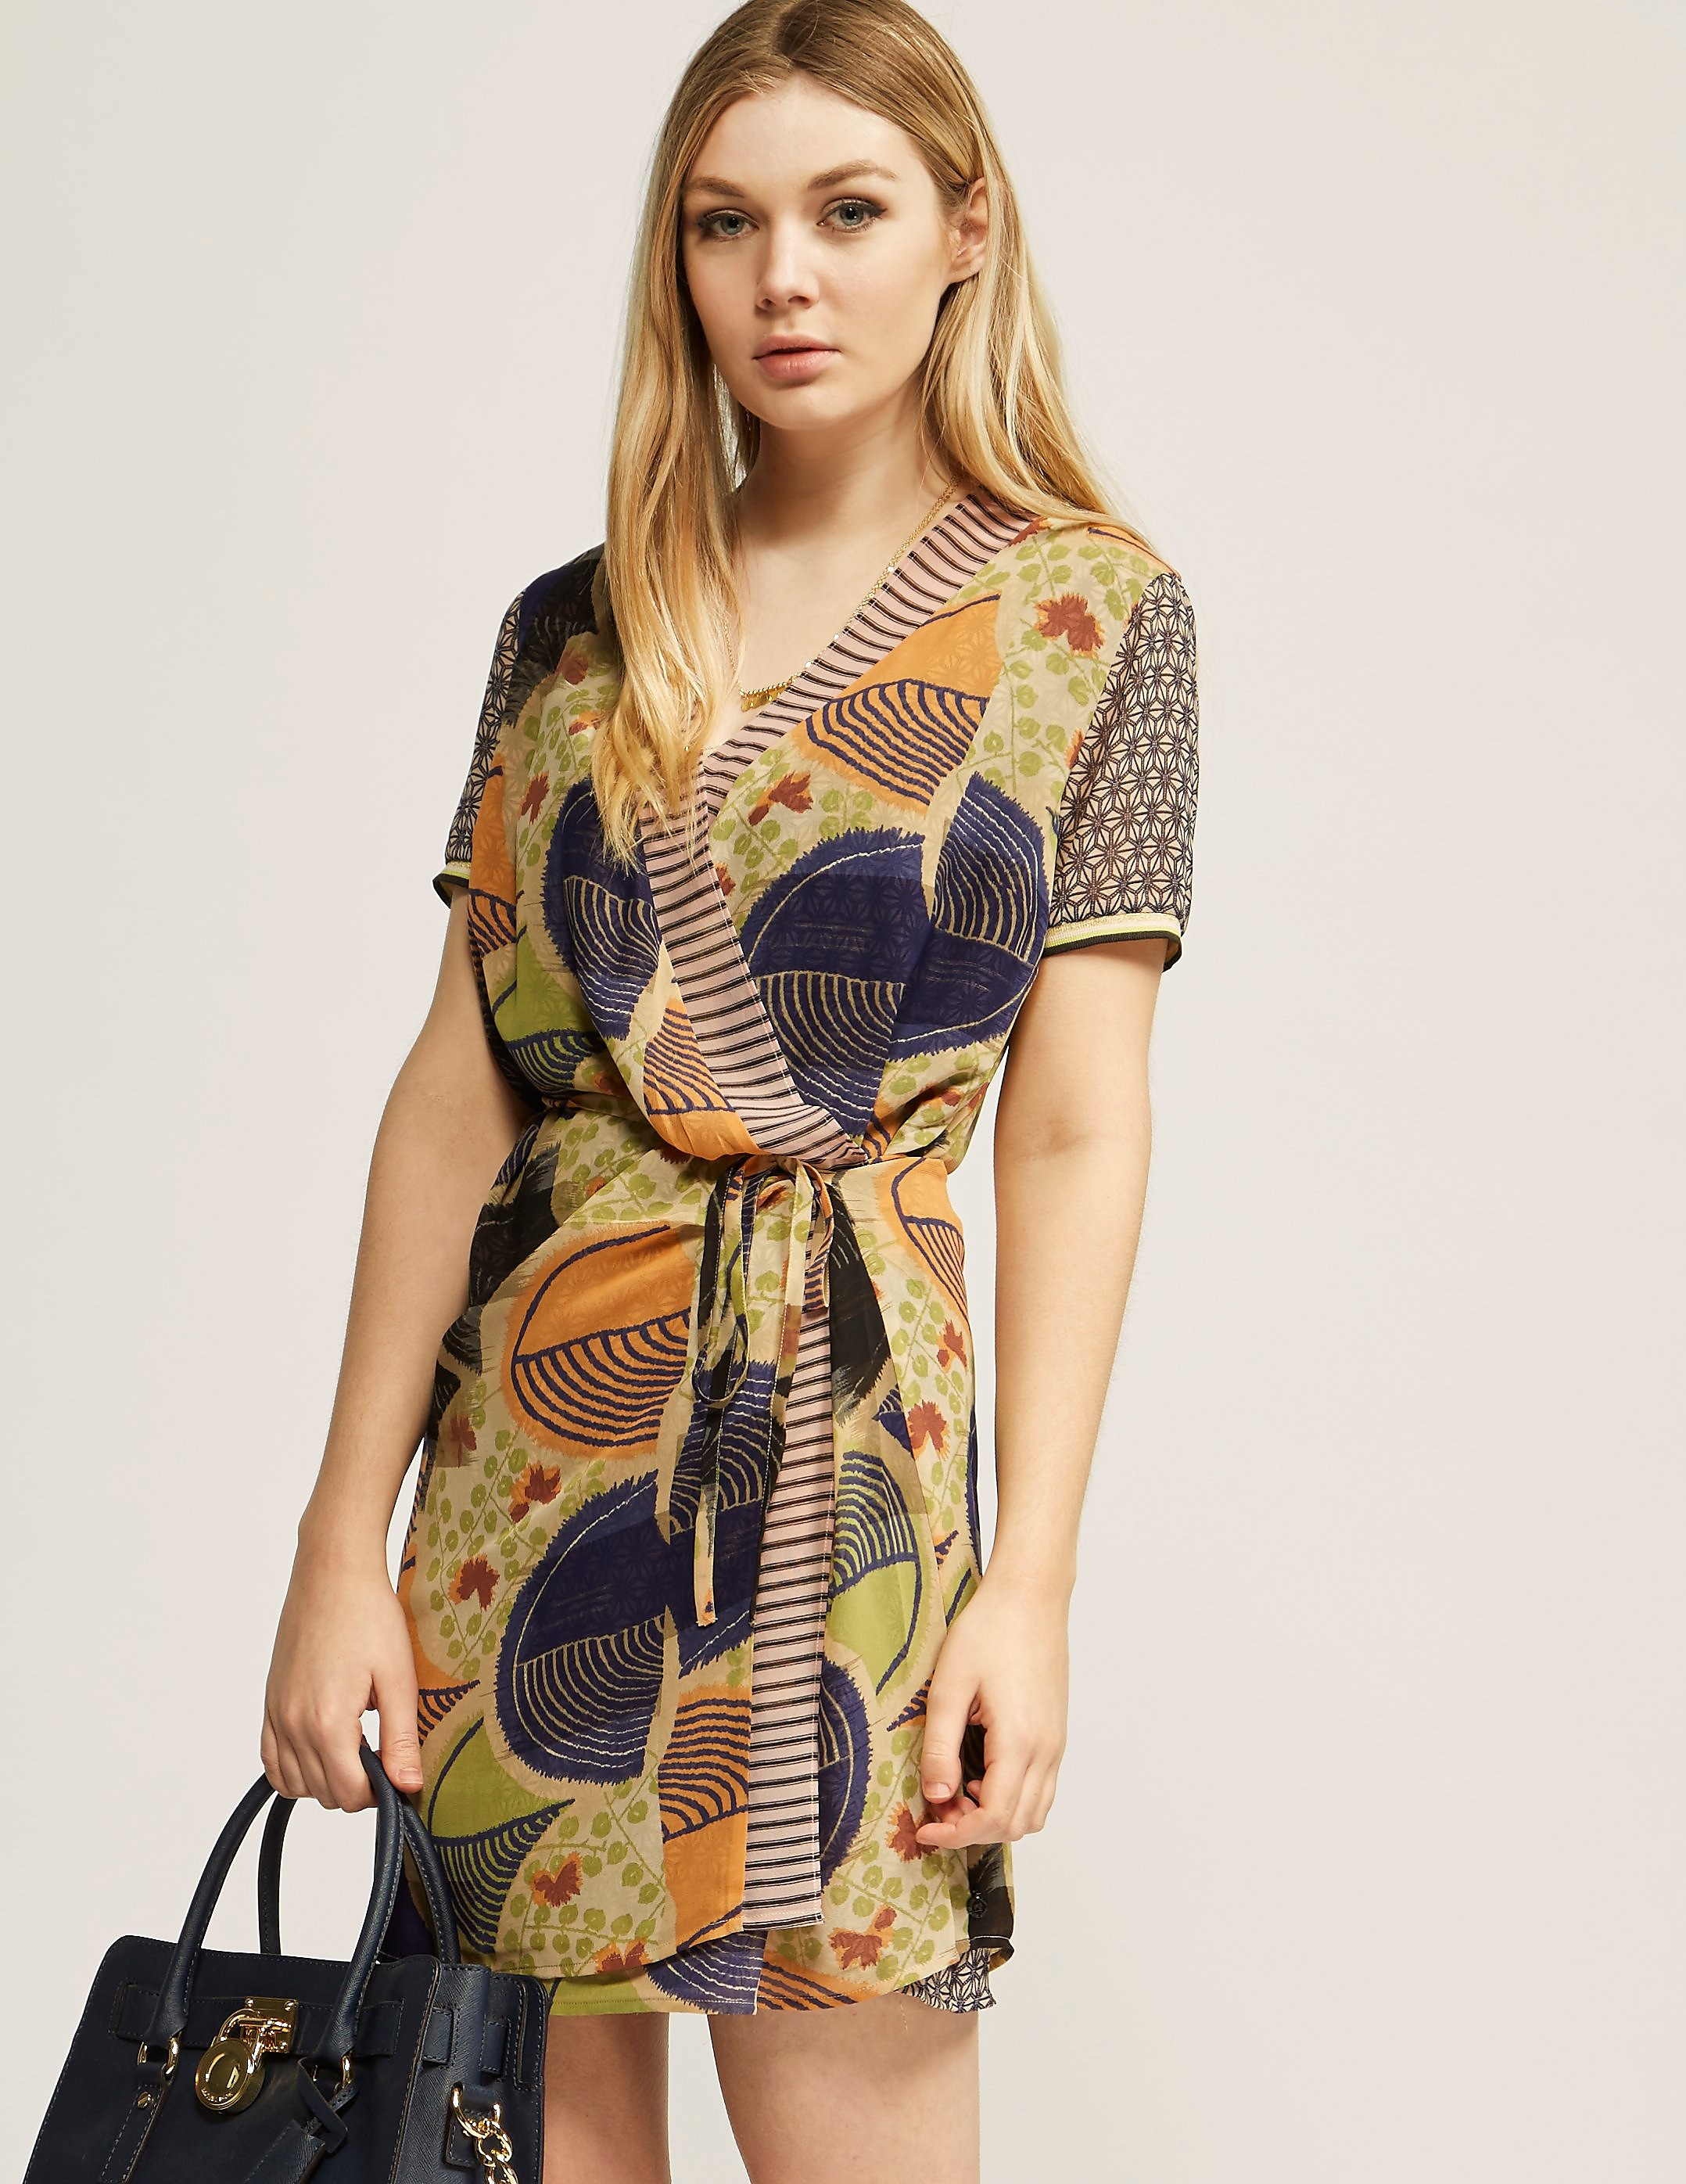 Maison Scotch Mixed Print Double Layer Dress